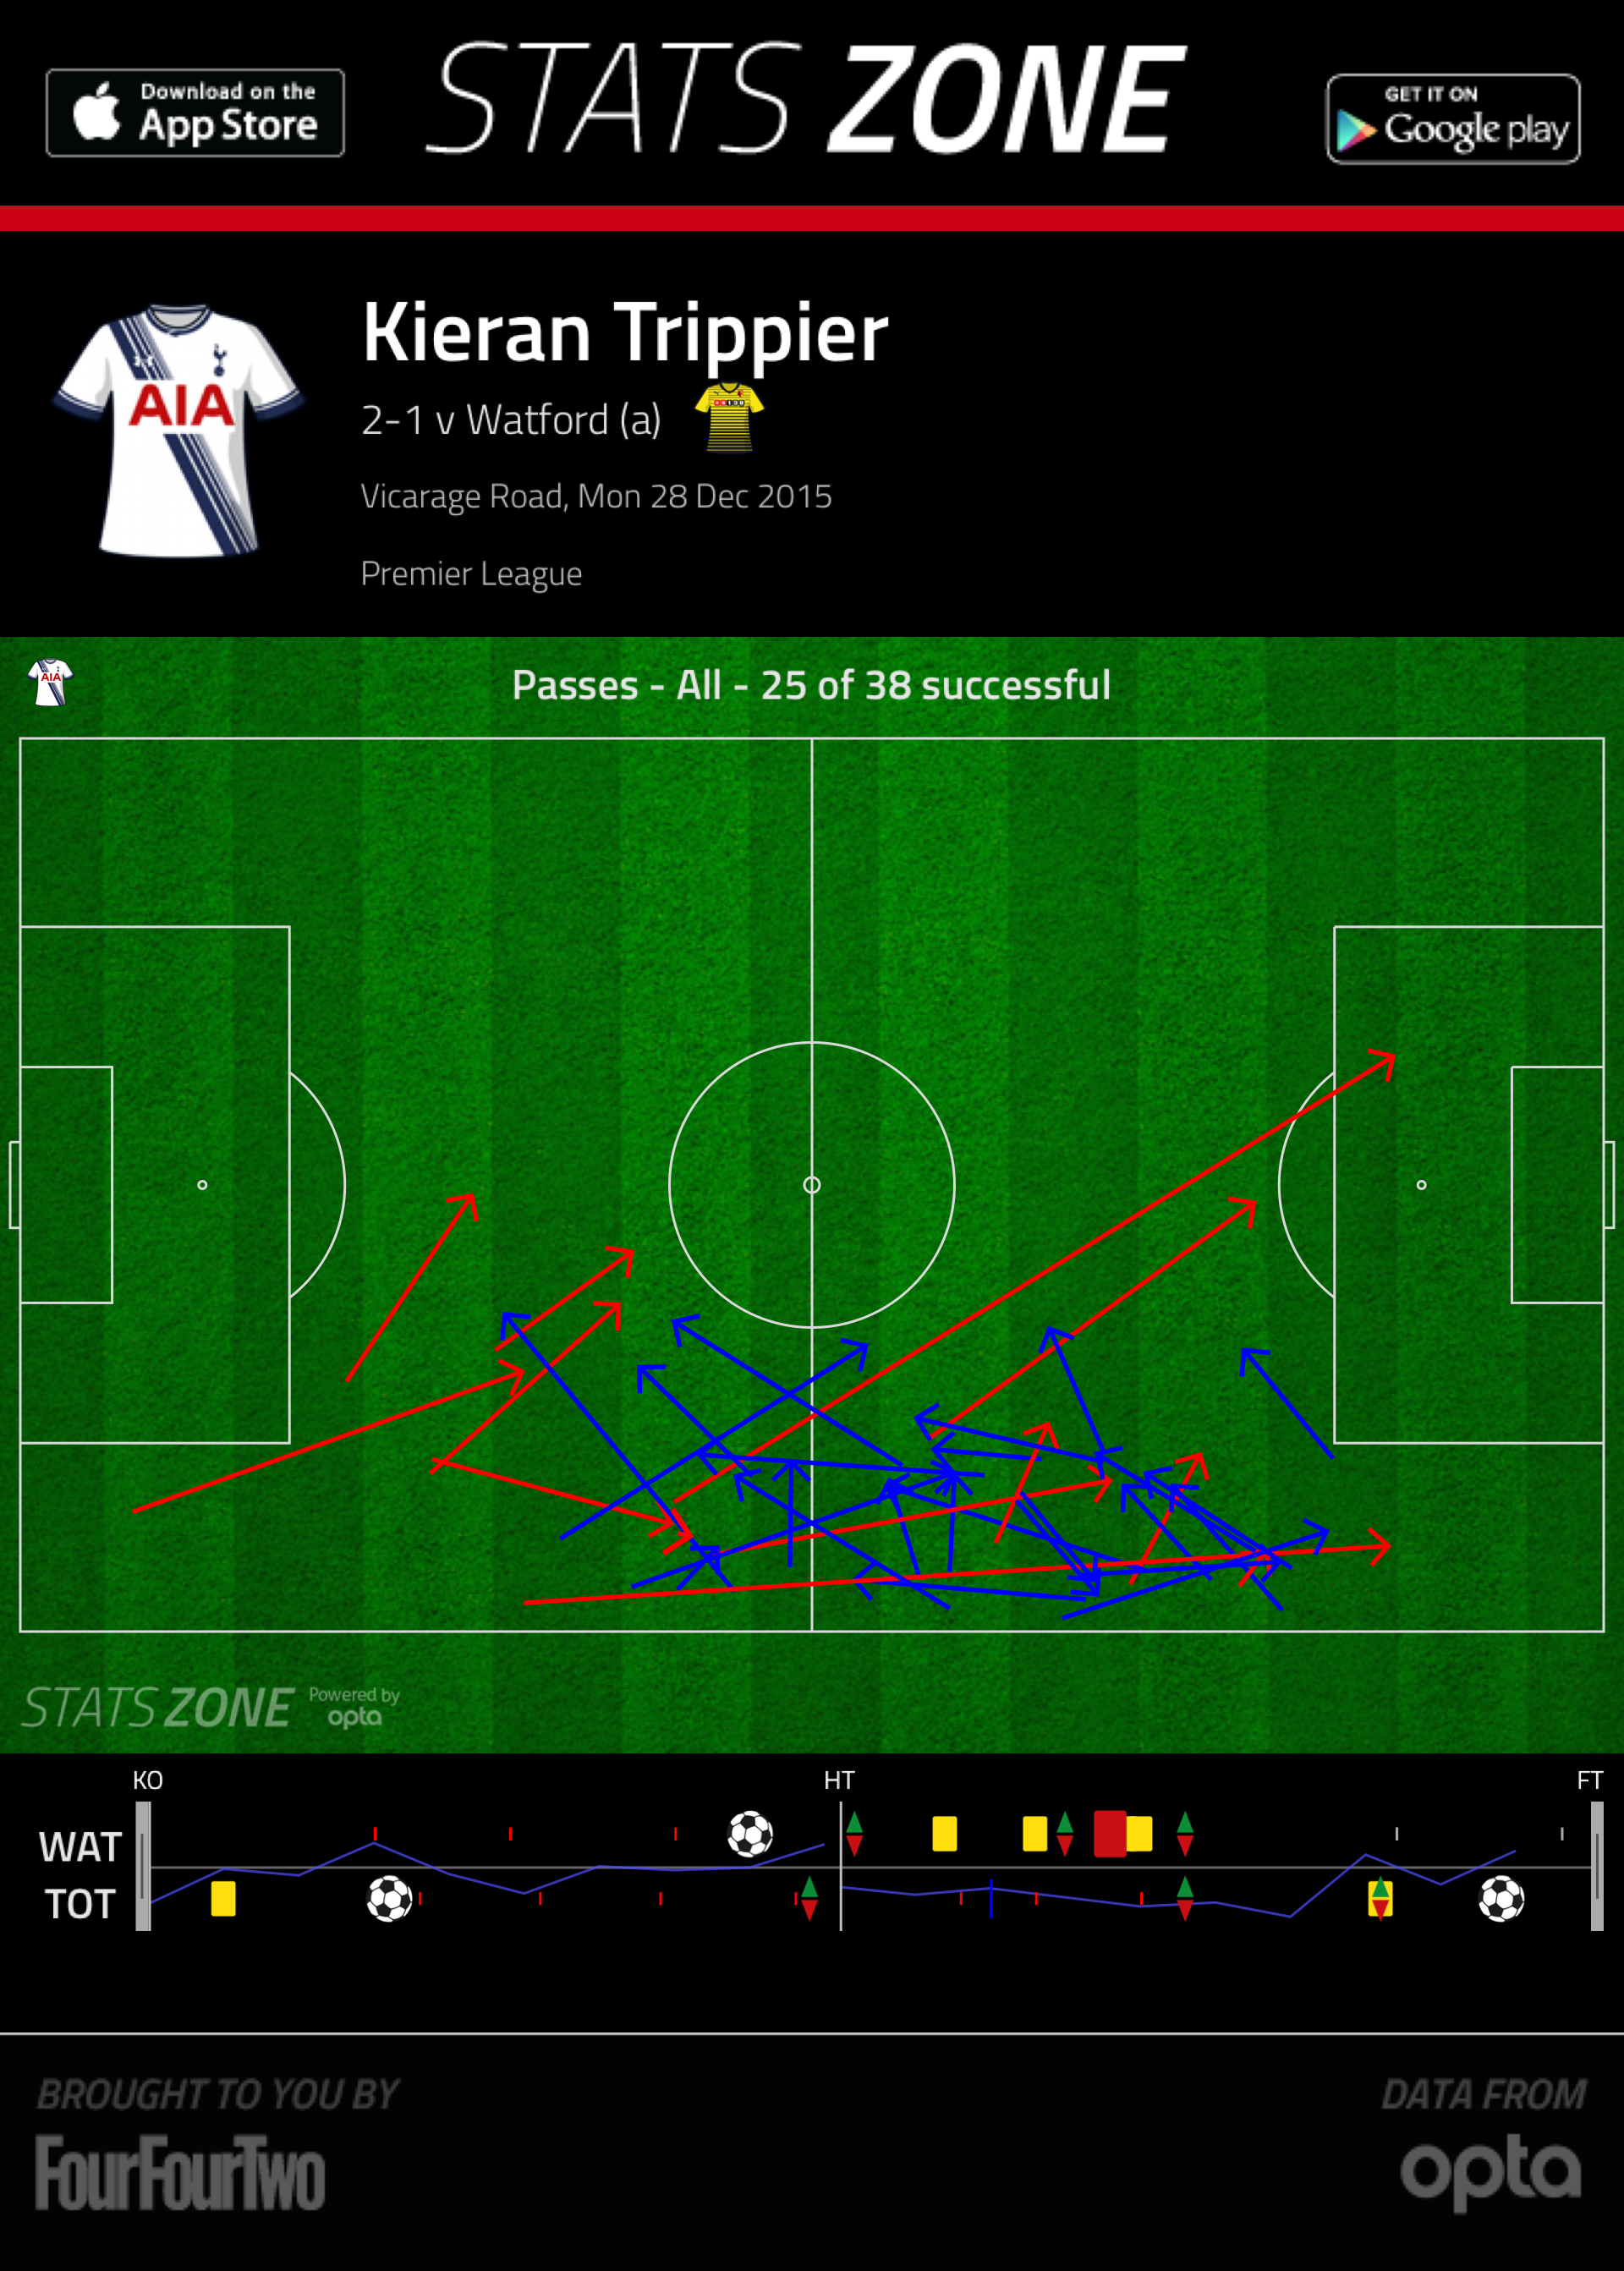 Trippier's passing vs Watford